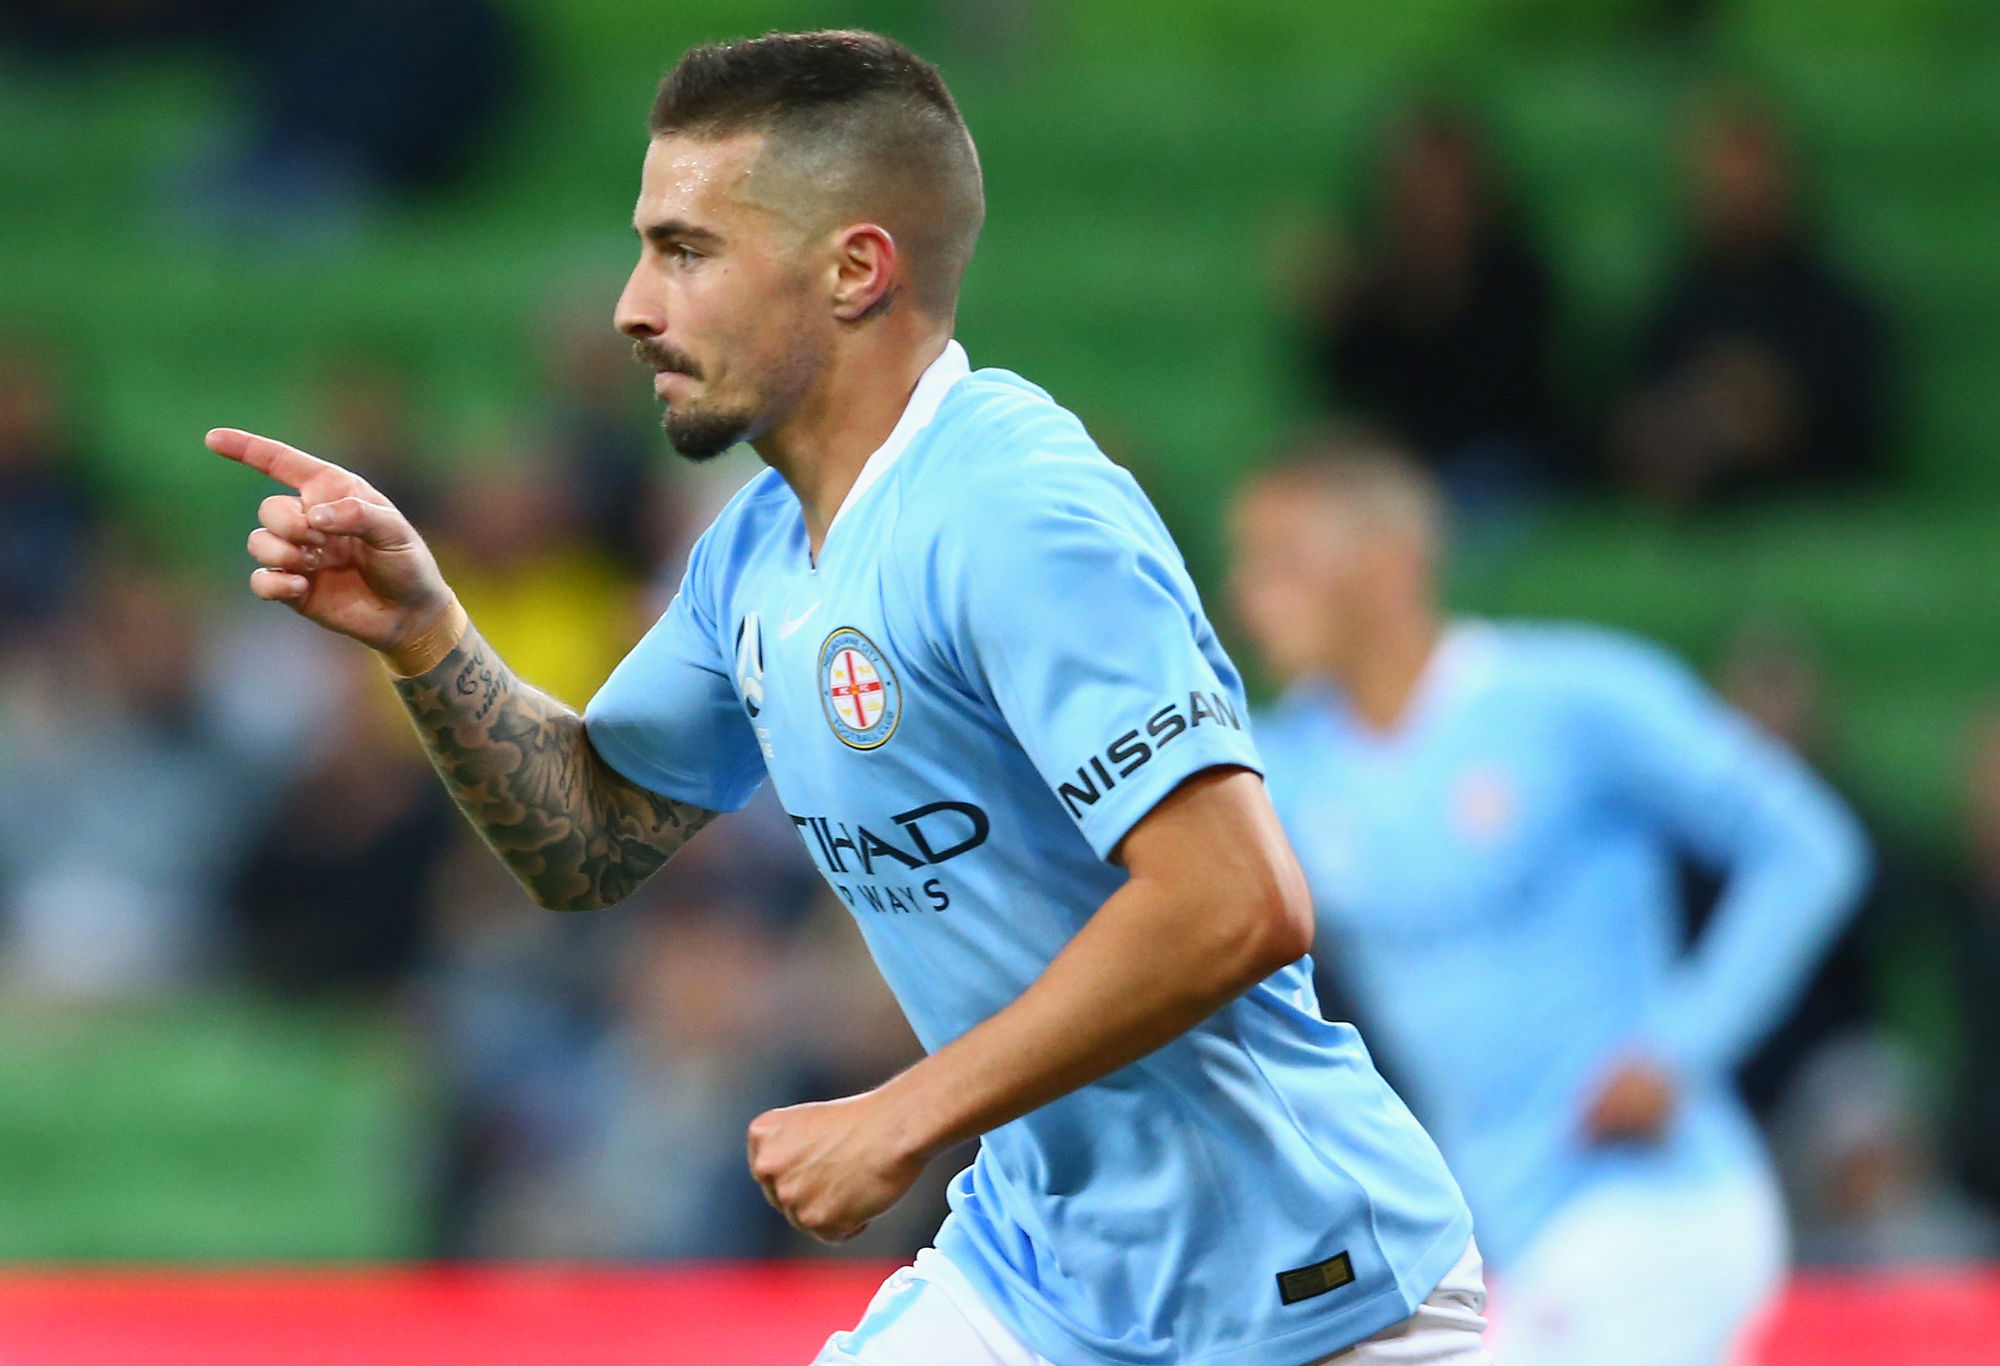 A-League Round 1 preview and predictions